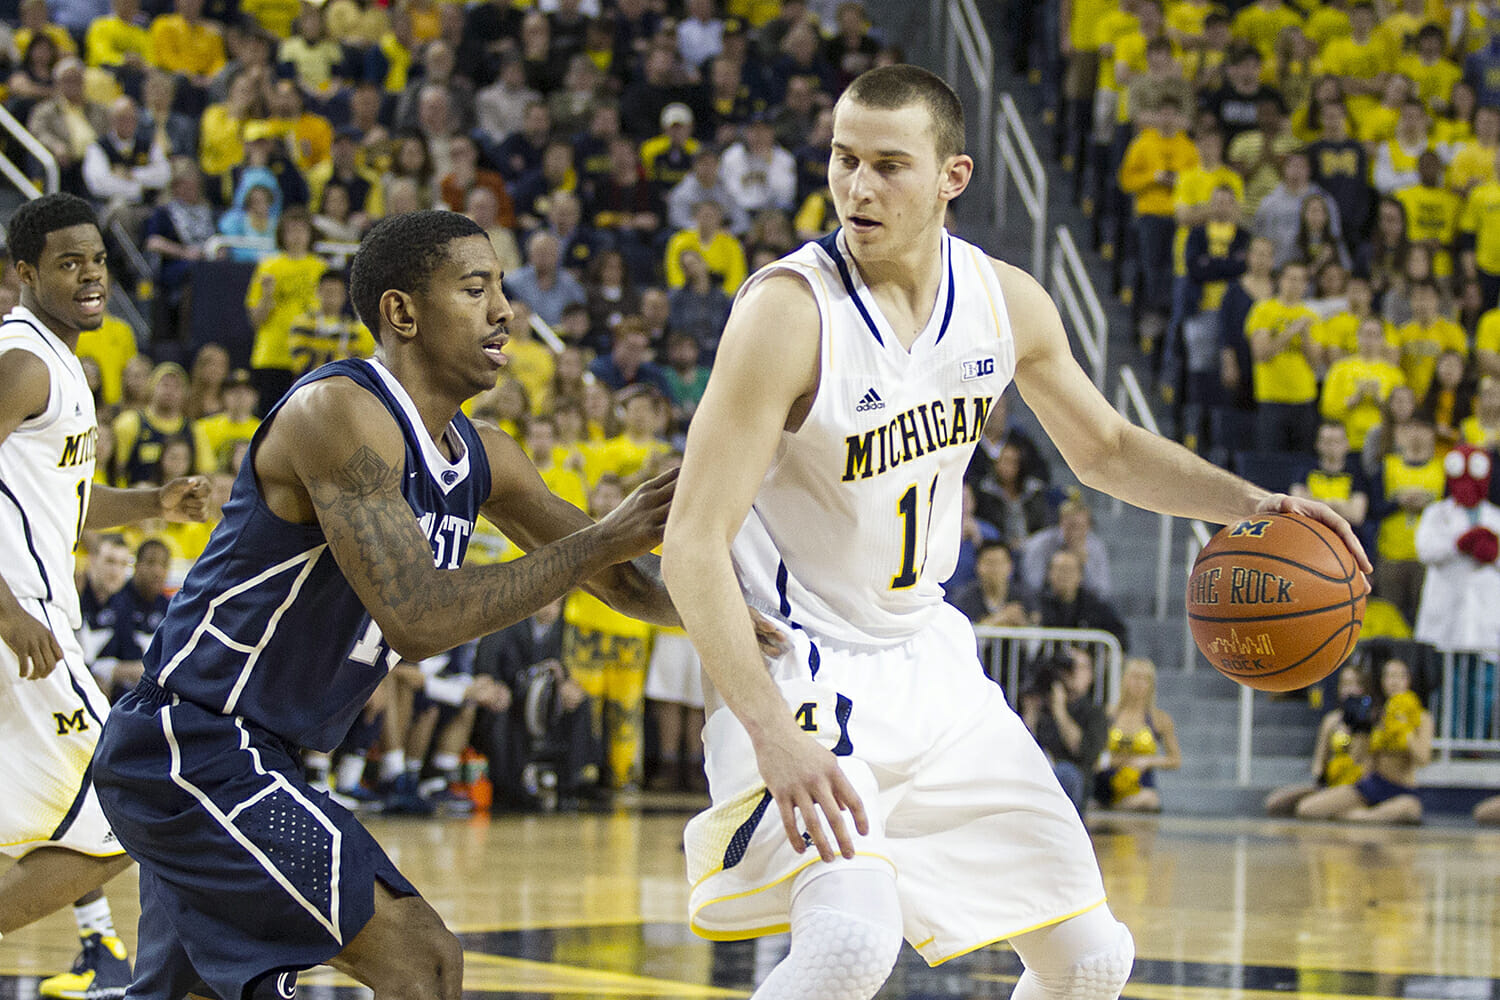 Michigan 80, Penn State 67 – #20